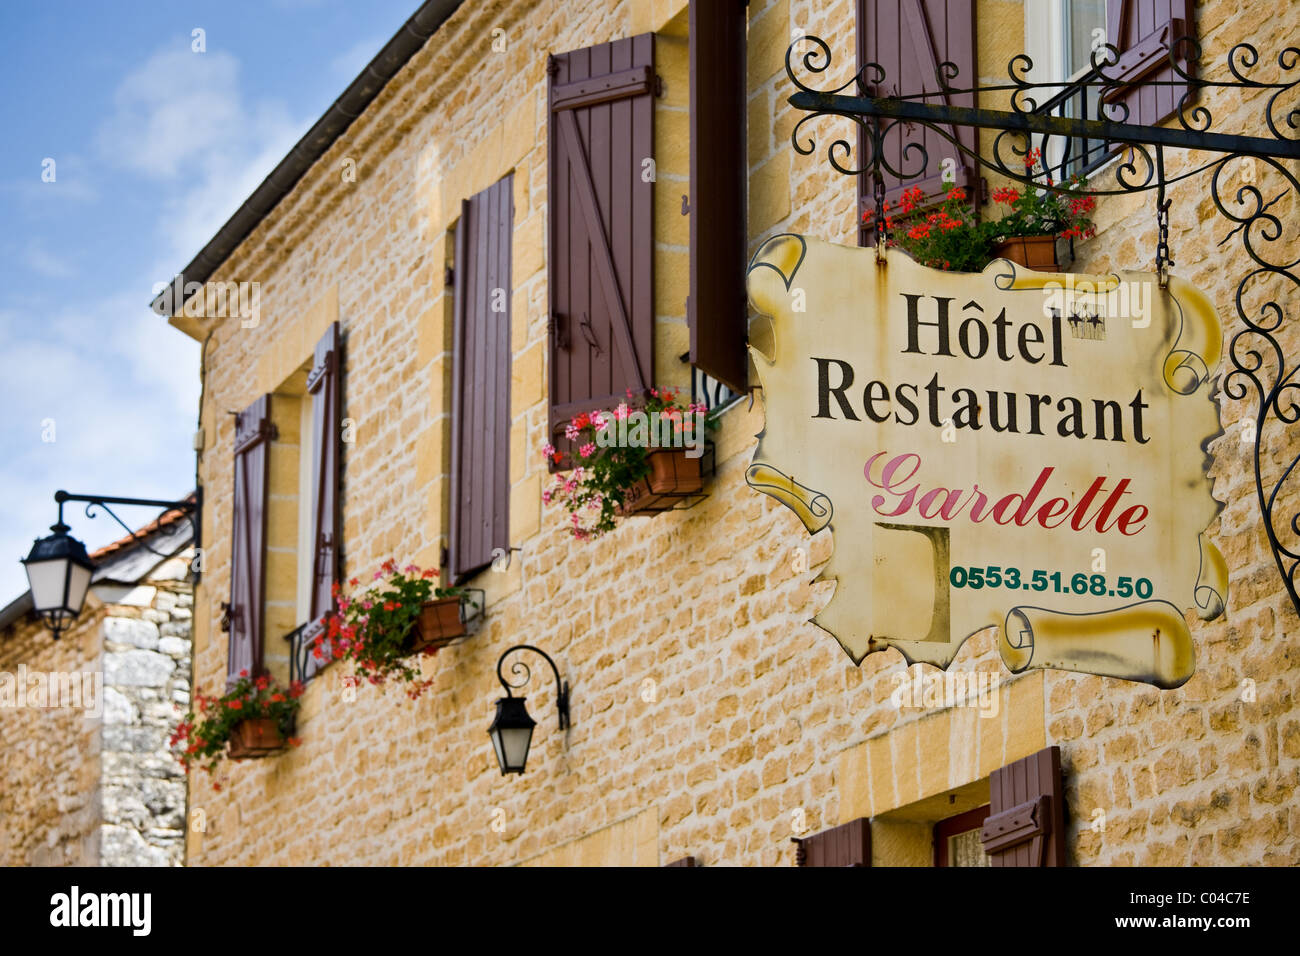 Hotel Restaurant Gardette sign, France Beautiful village of St Amand de Coly, Dordogne in Aquitaine, France - Stock Image